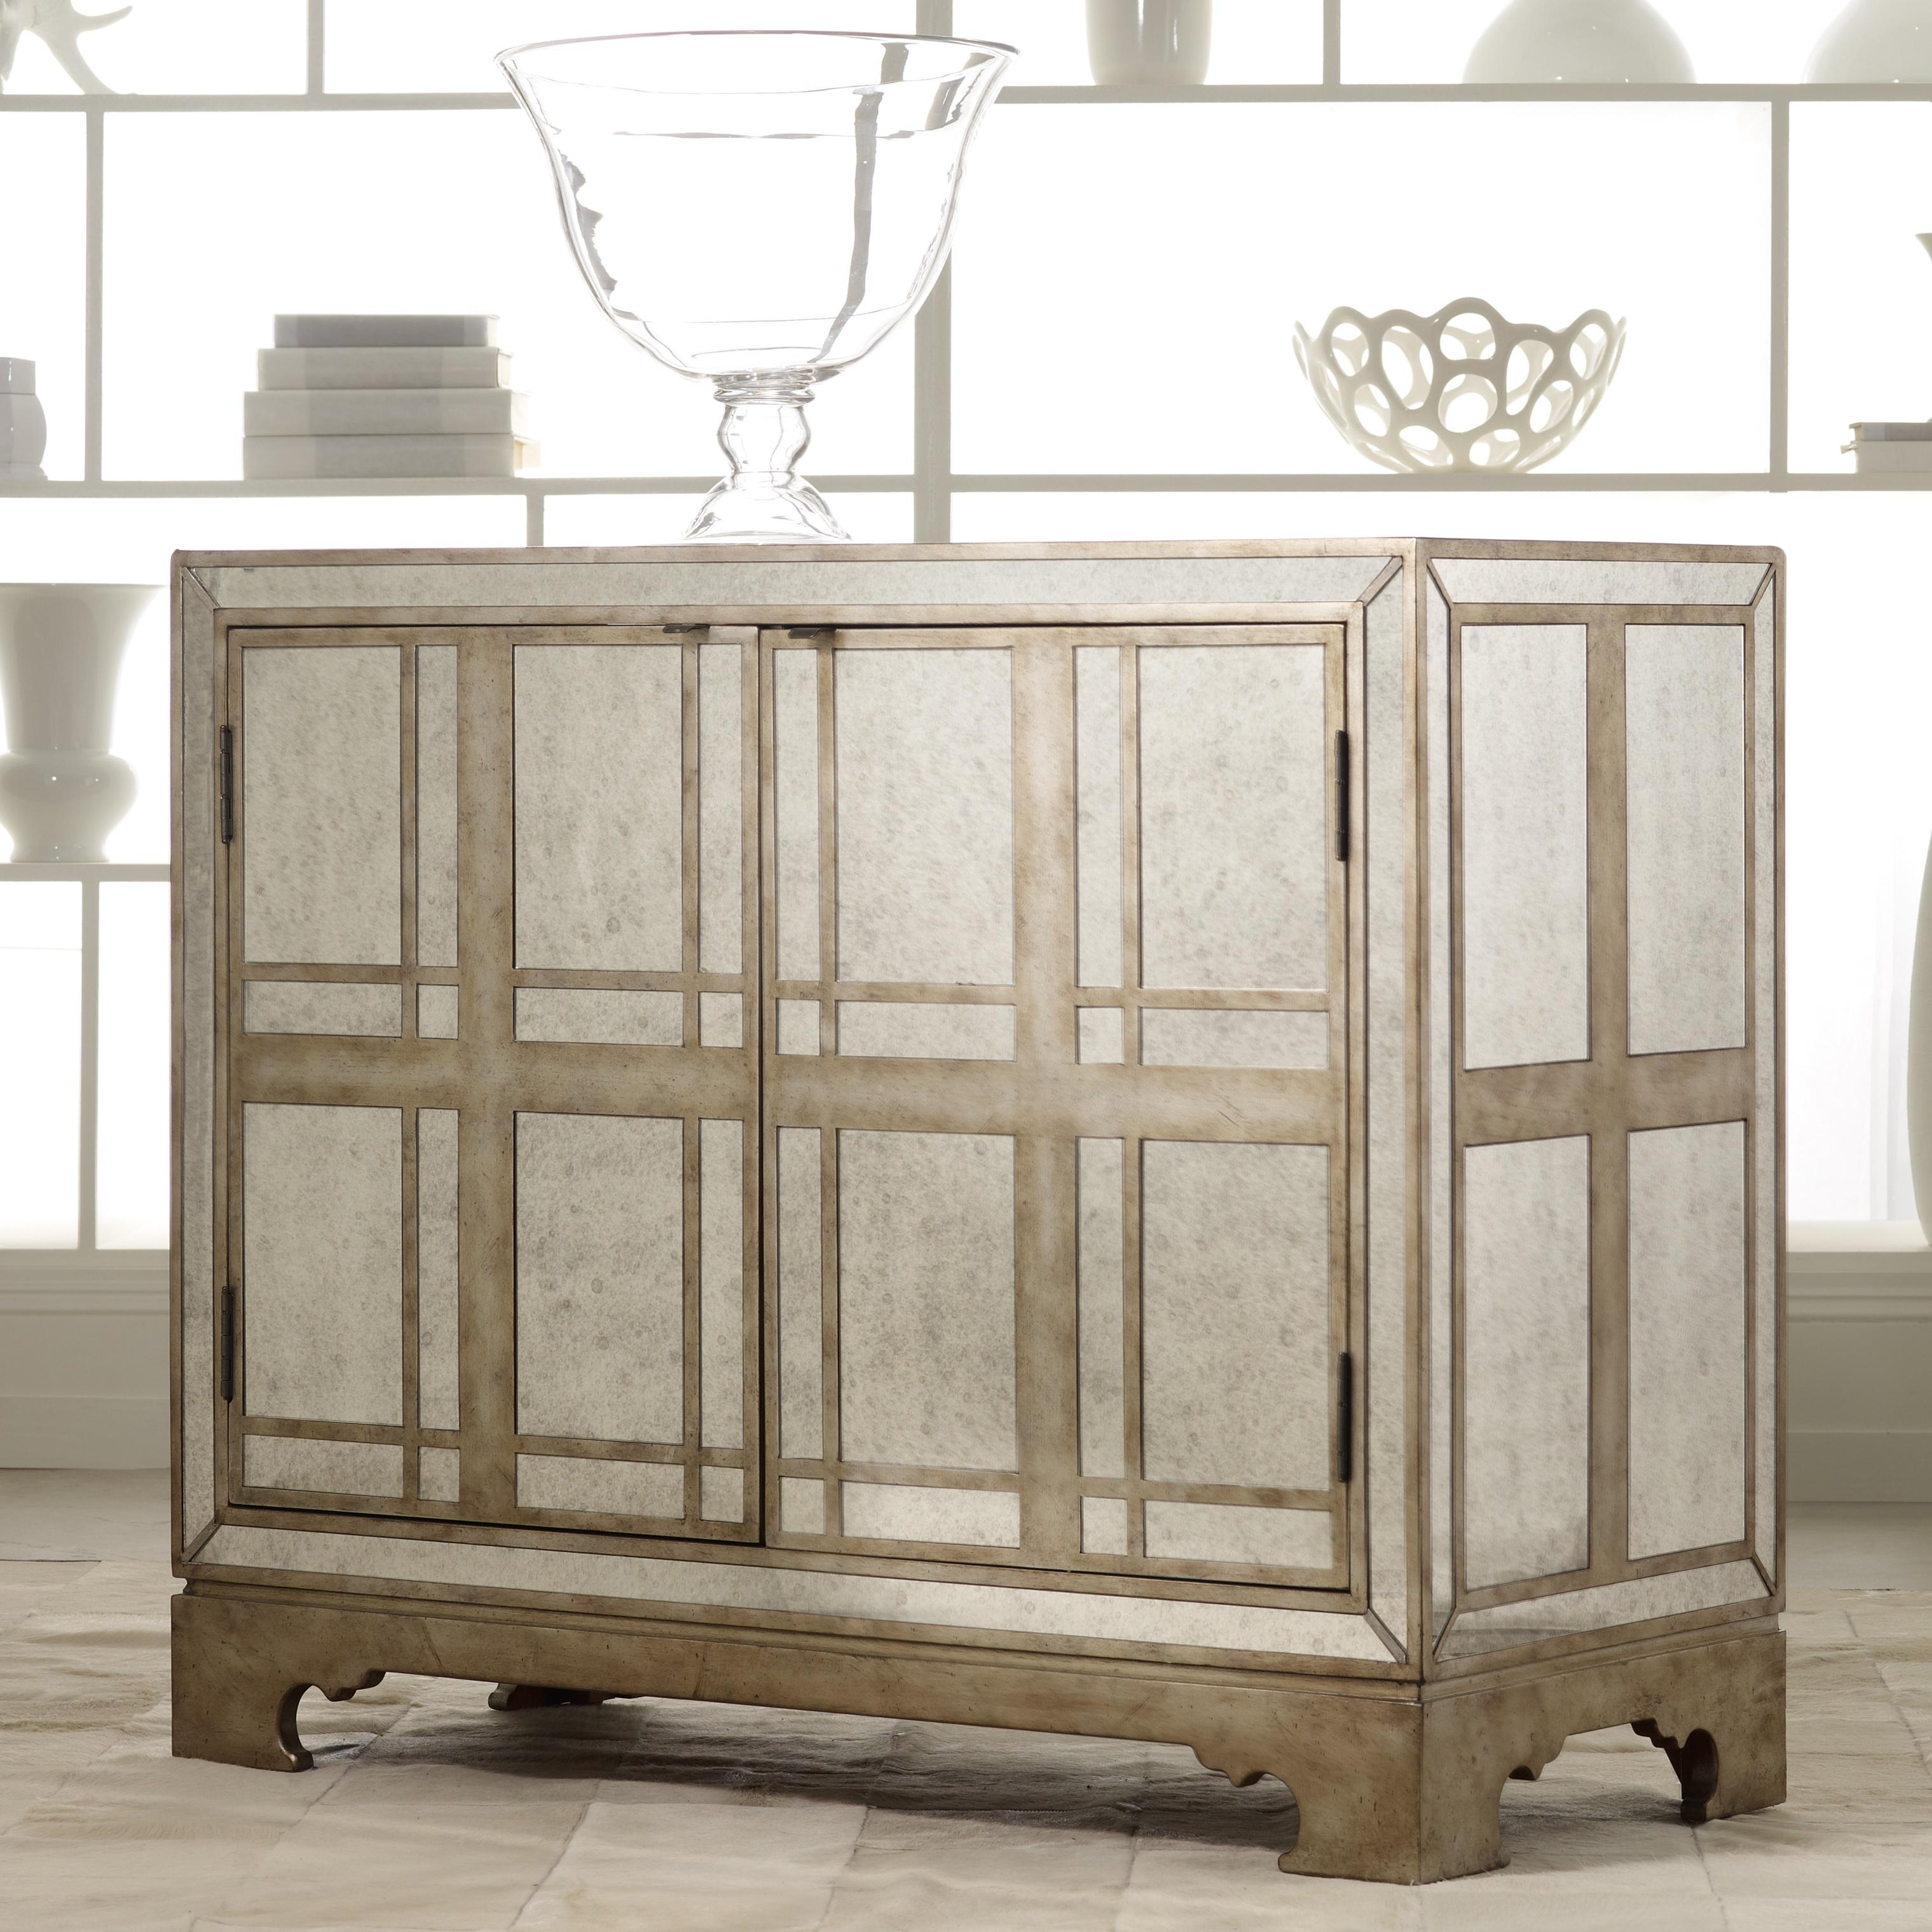 Hooker Furniture Mélange Mirrored Plaid Chest - Item Number: 638-85054